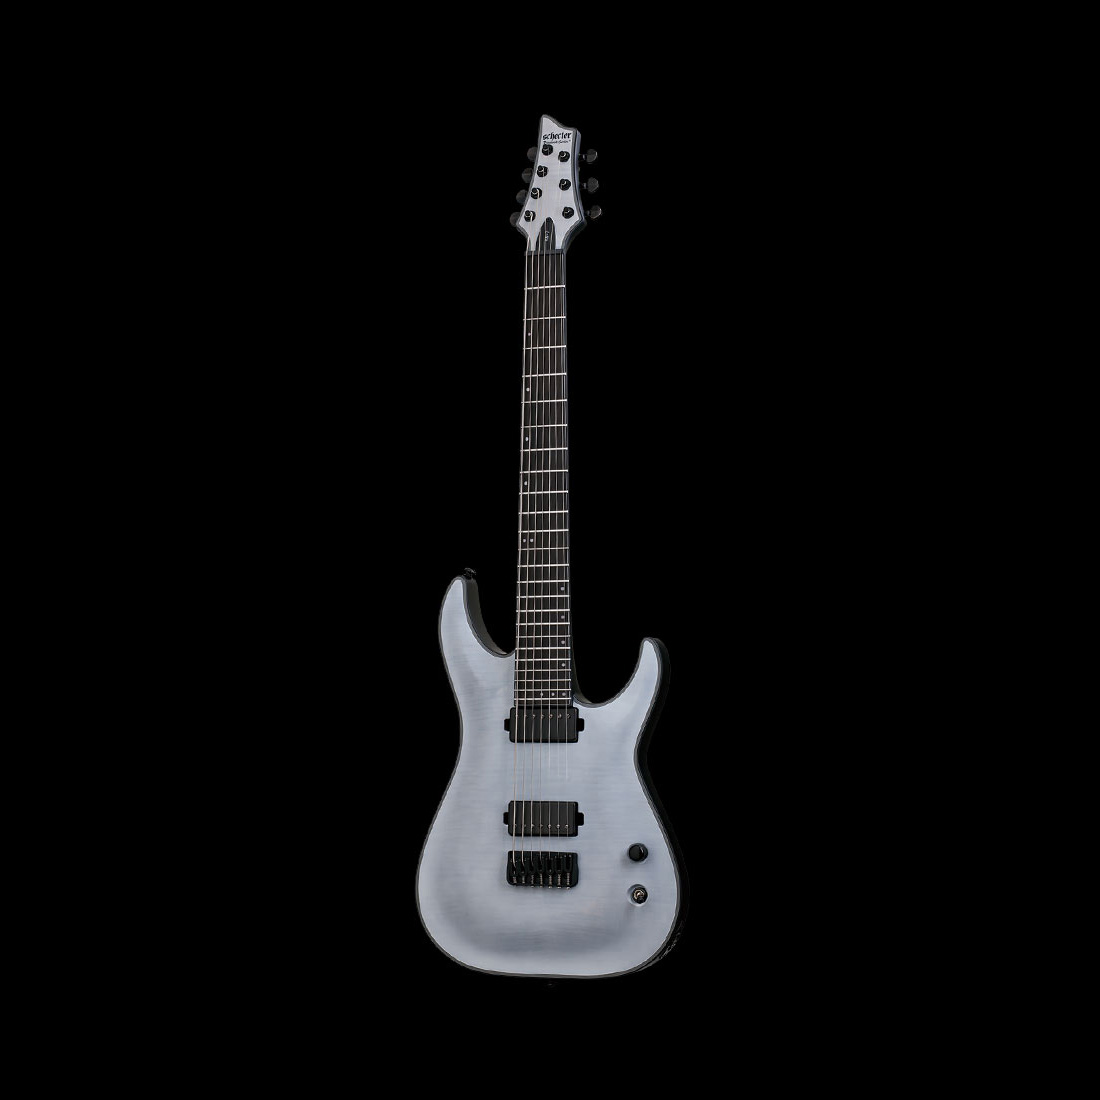 Schecter / Keith Mellow KM-7 Trans White Satin シェクター 7弦ギター Keith Merrowシグネイチャー 【お取り寄せ商品】